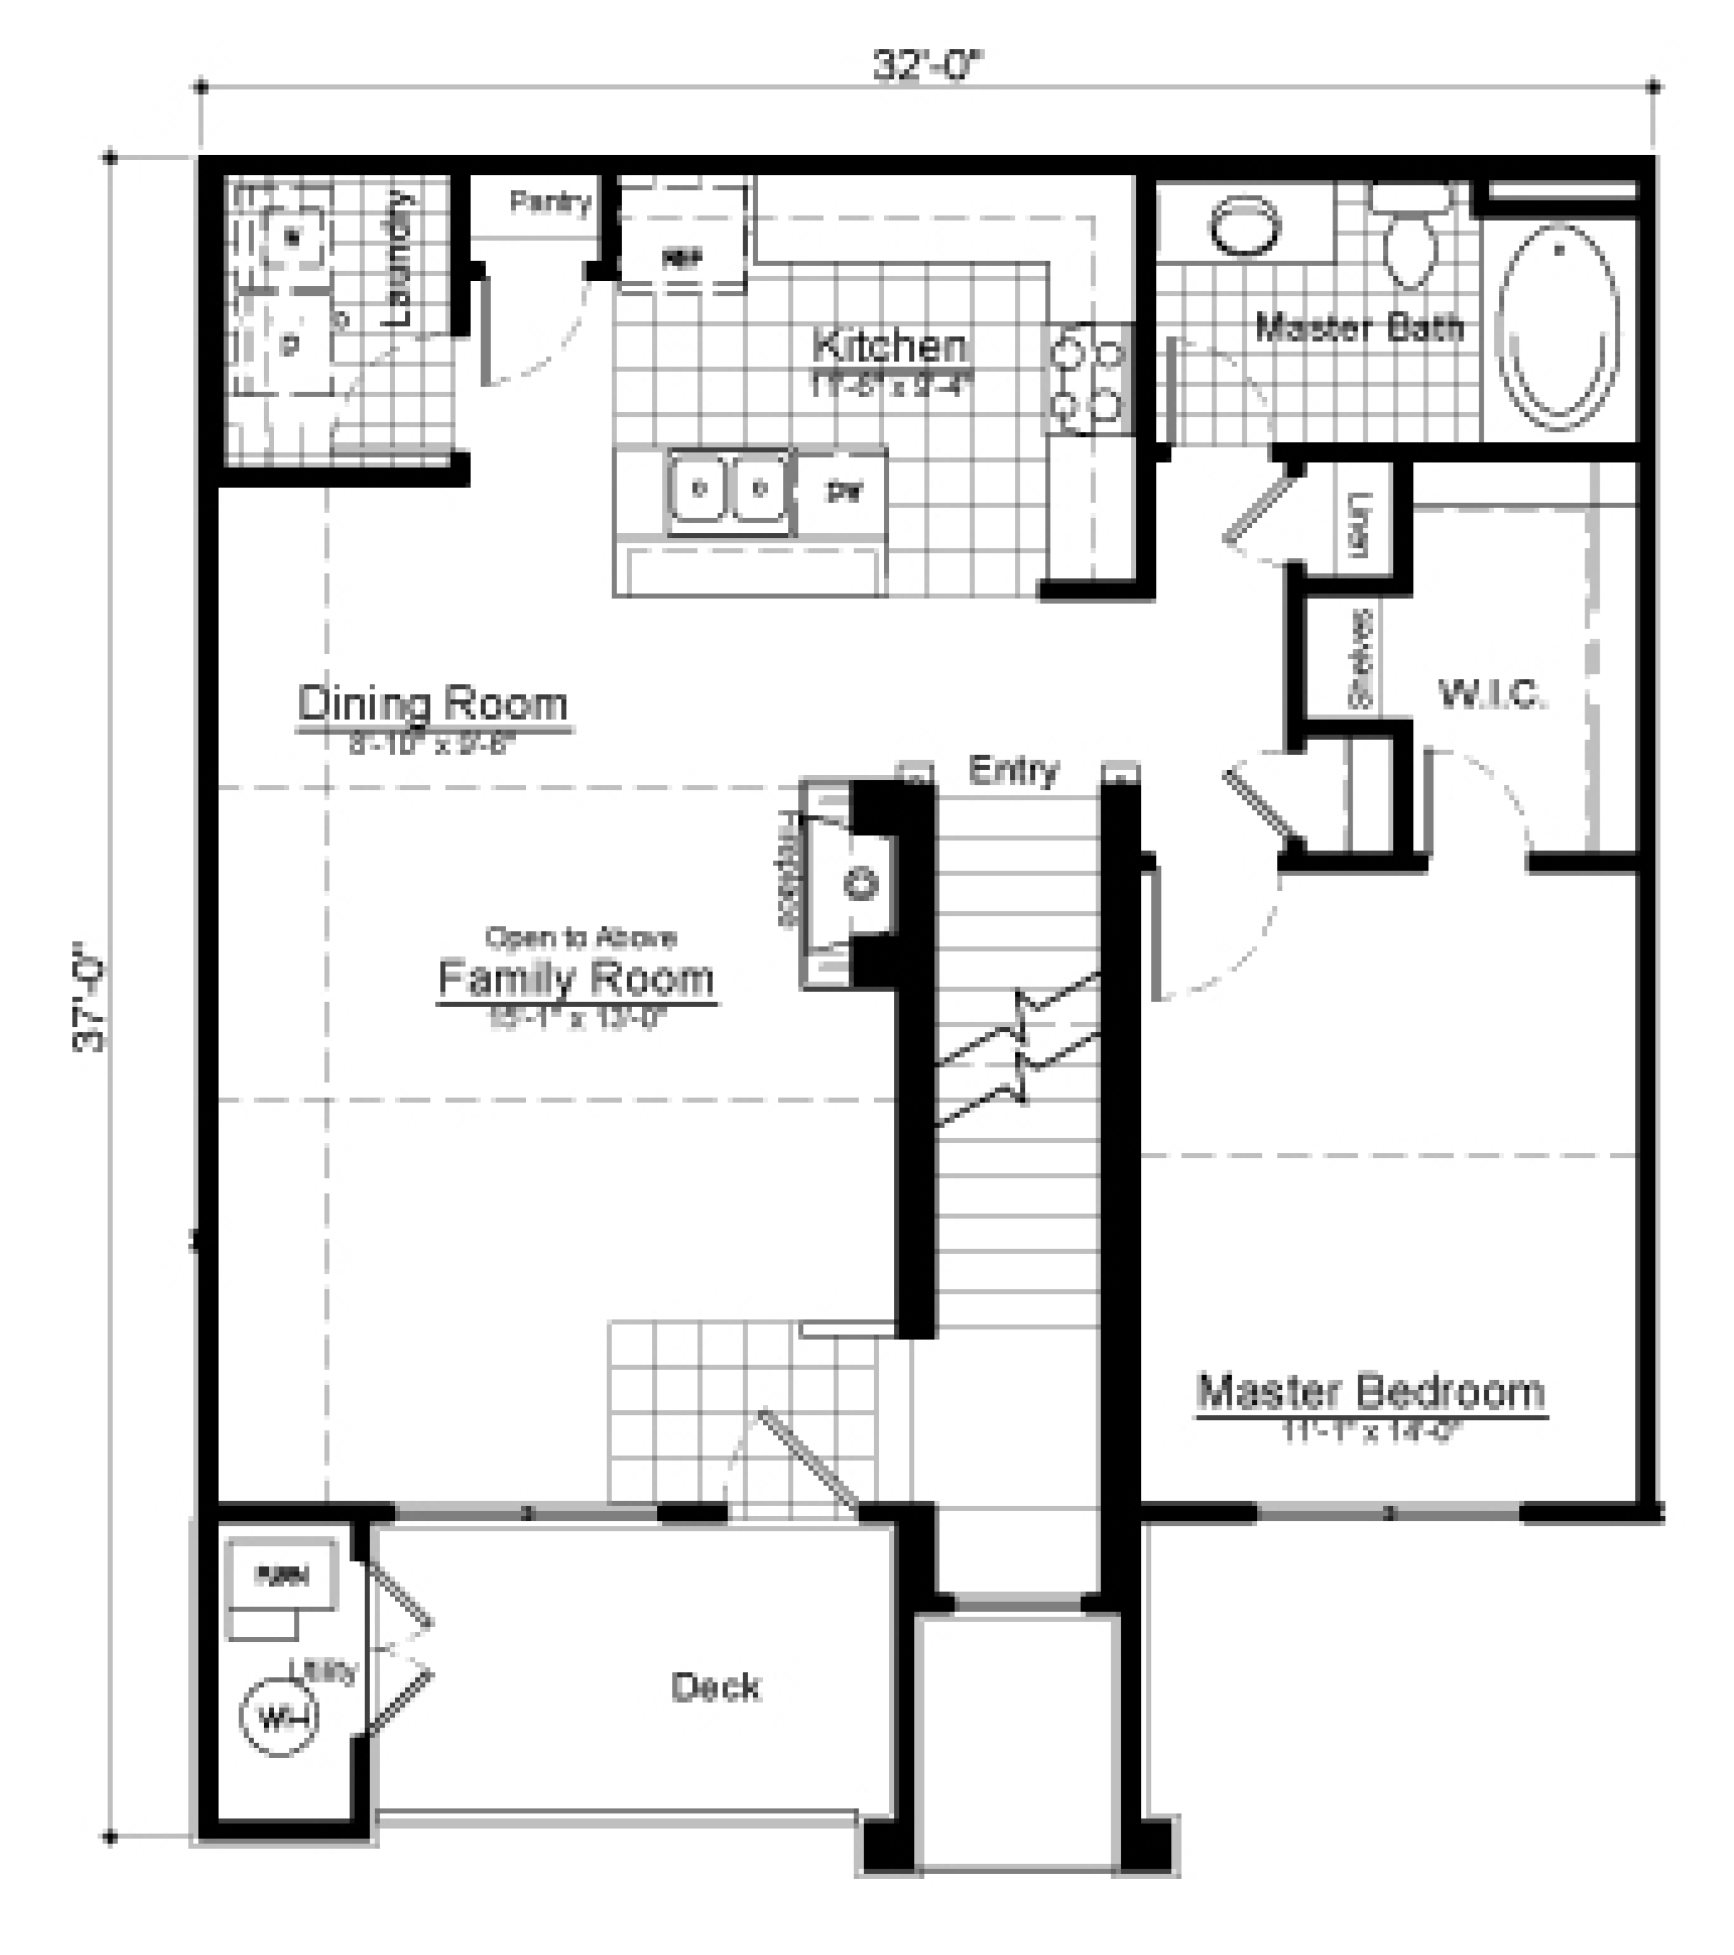 Floor Plans Of Maple Leaf Apartments In Arvada, CO